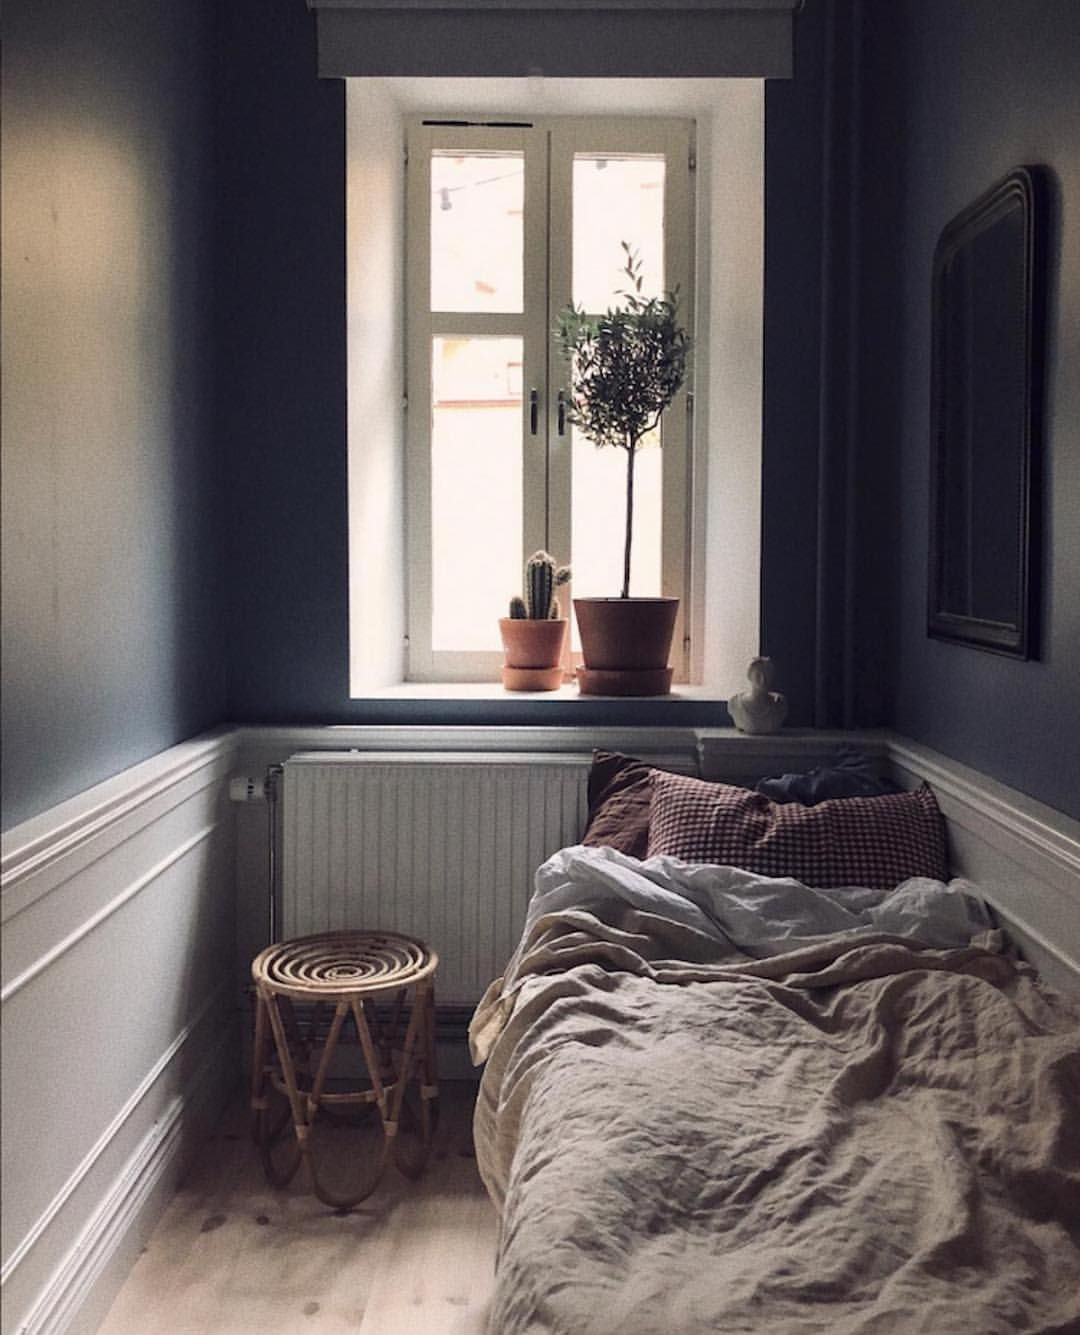 My Scandinavian Home On Instagram This Cosy Guest Room In The Home Of Saramargaretah Proves That You Totally Can P In 2020 Single Bedroom Tiny Bedroom Small Bedroom